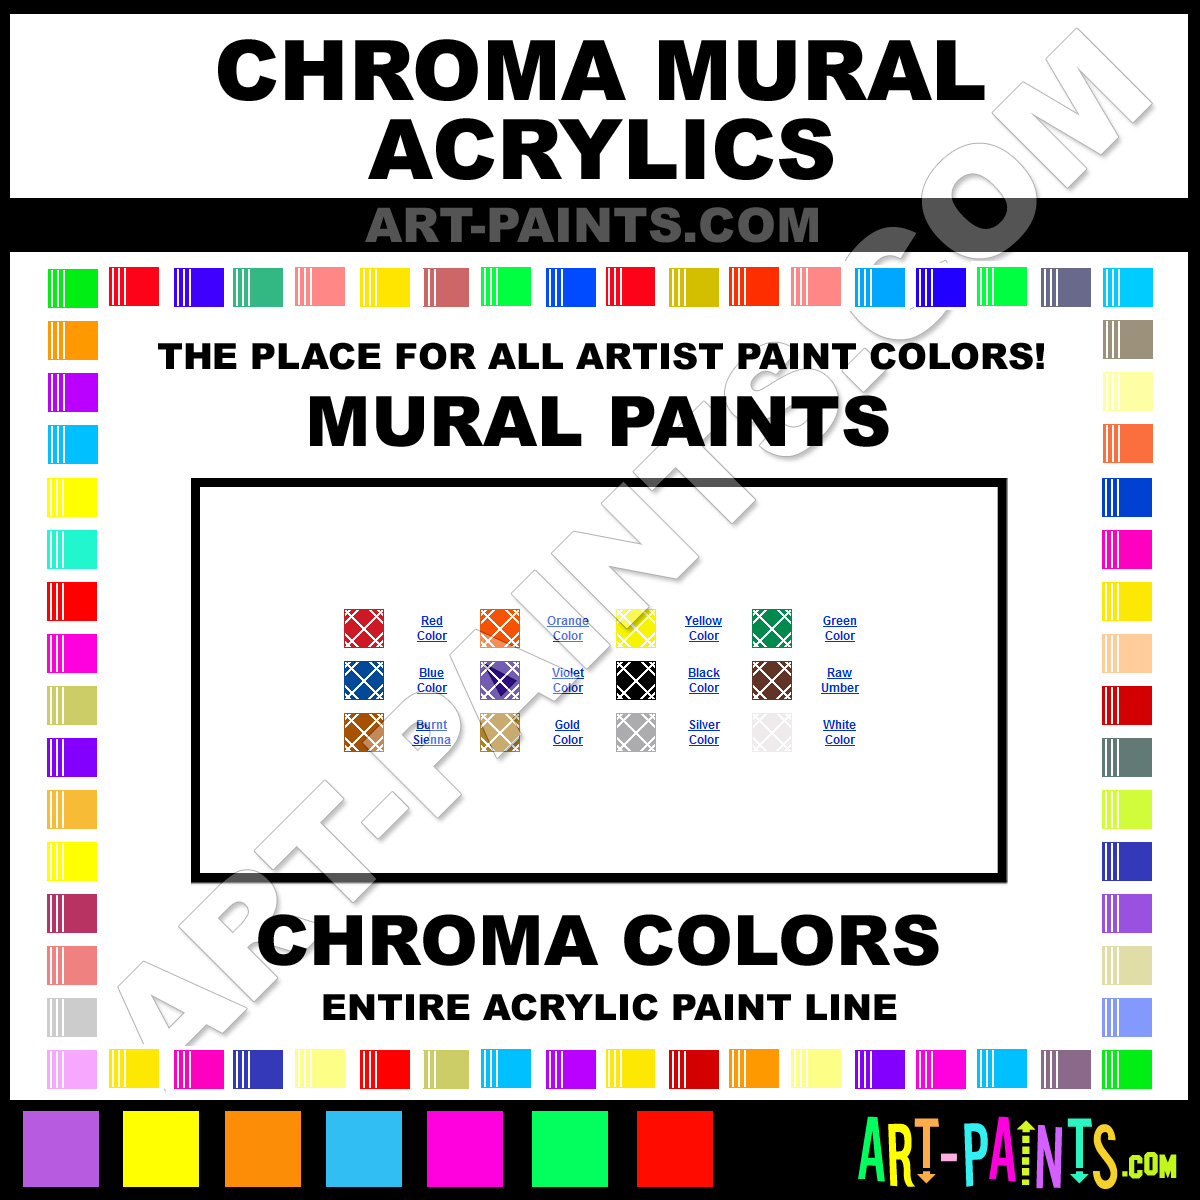 chroma mural acrylic paint colors chroma mural paint